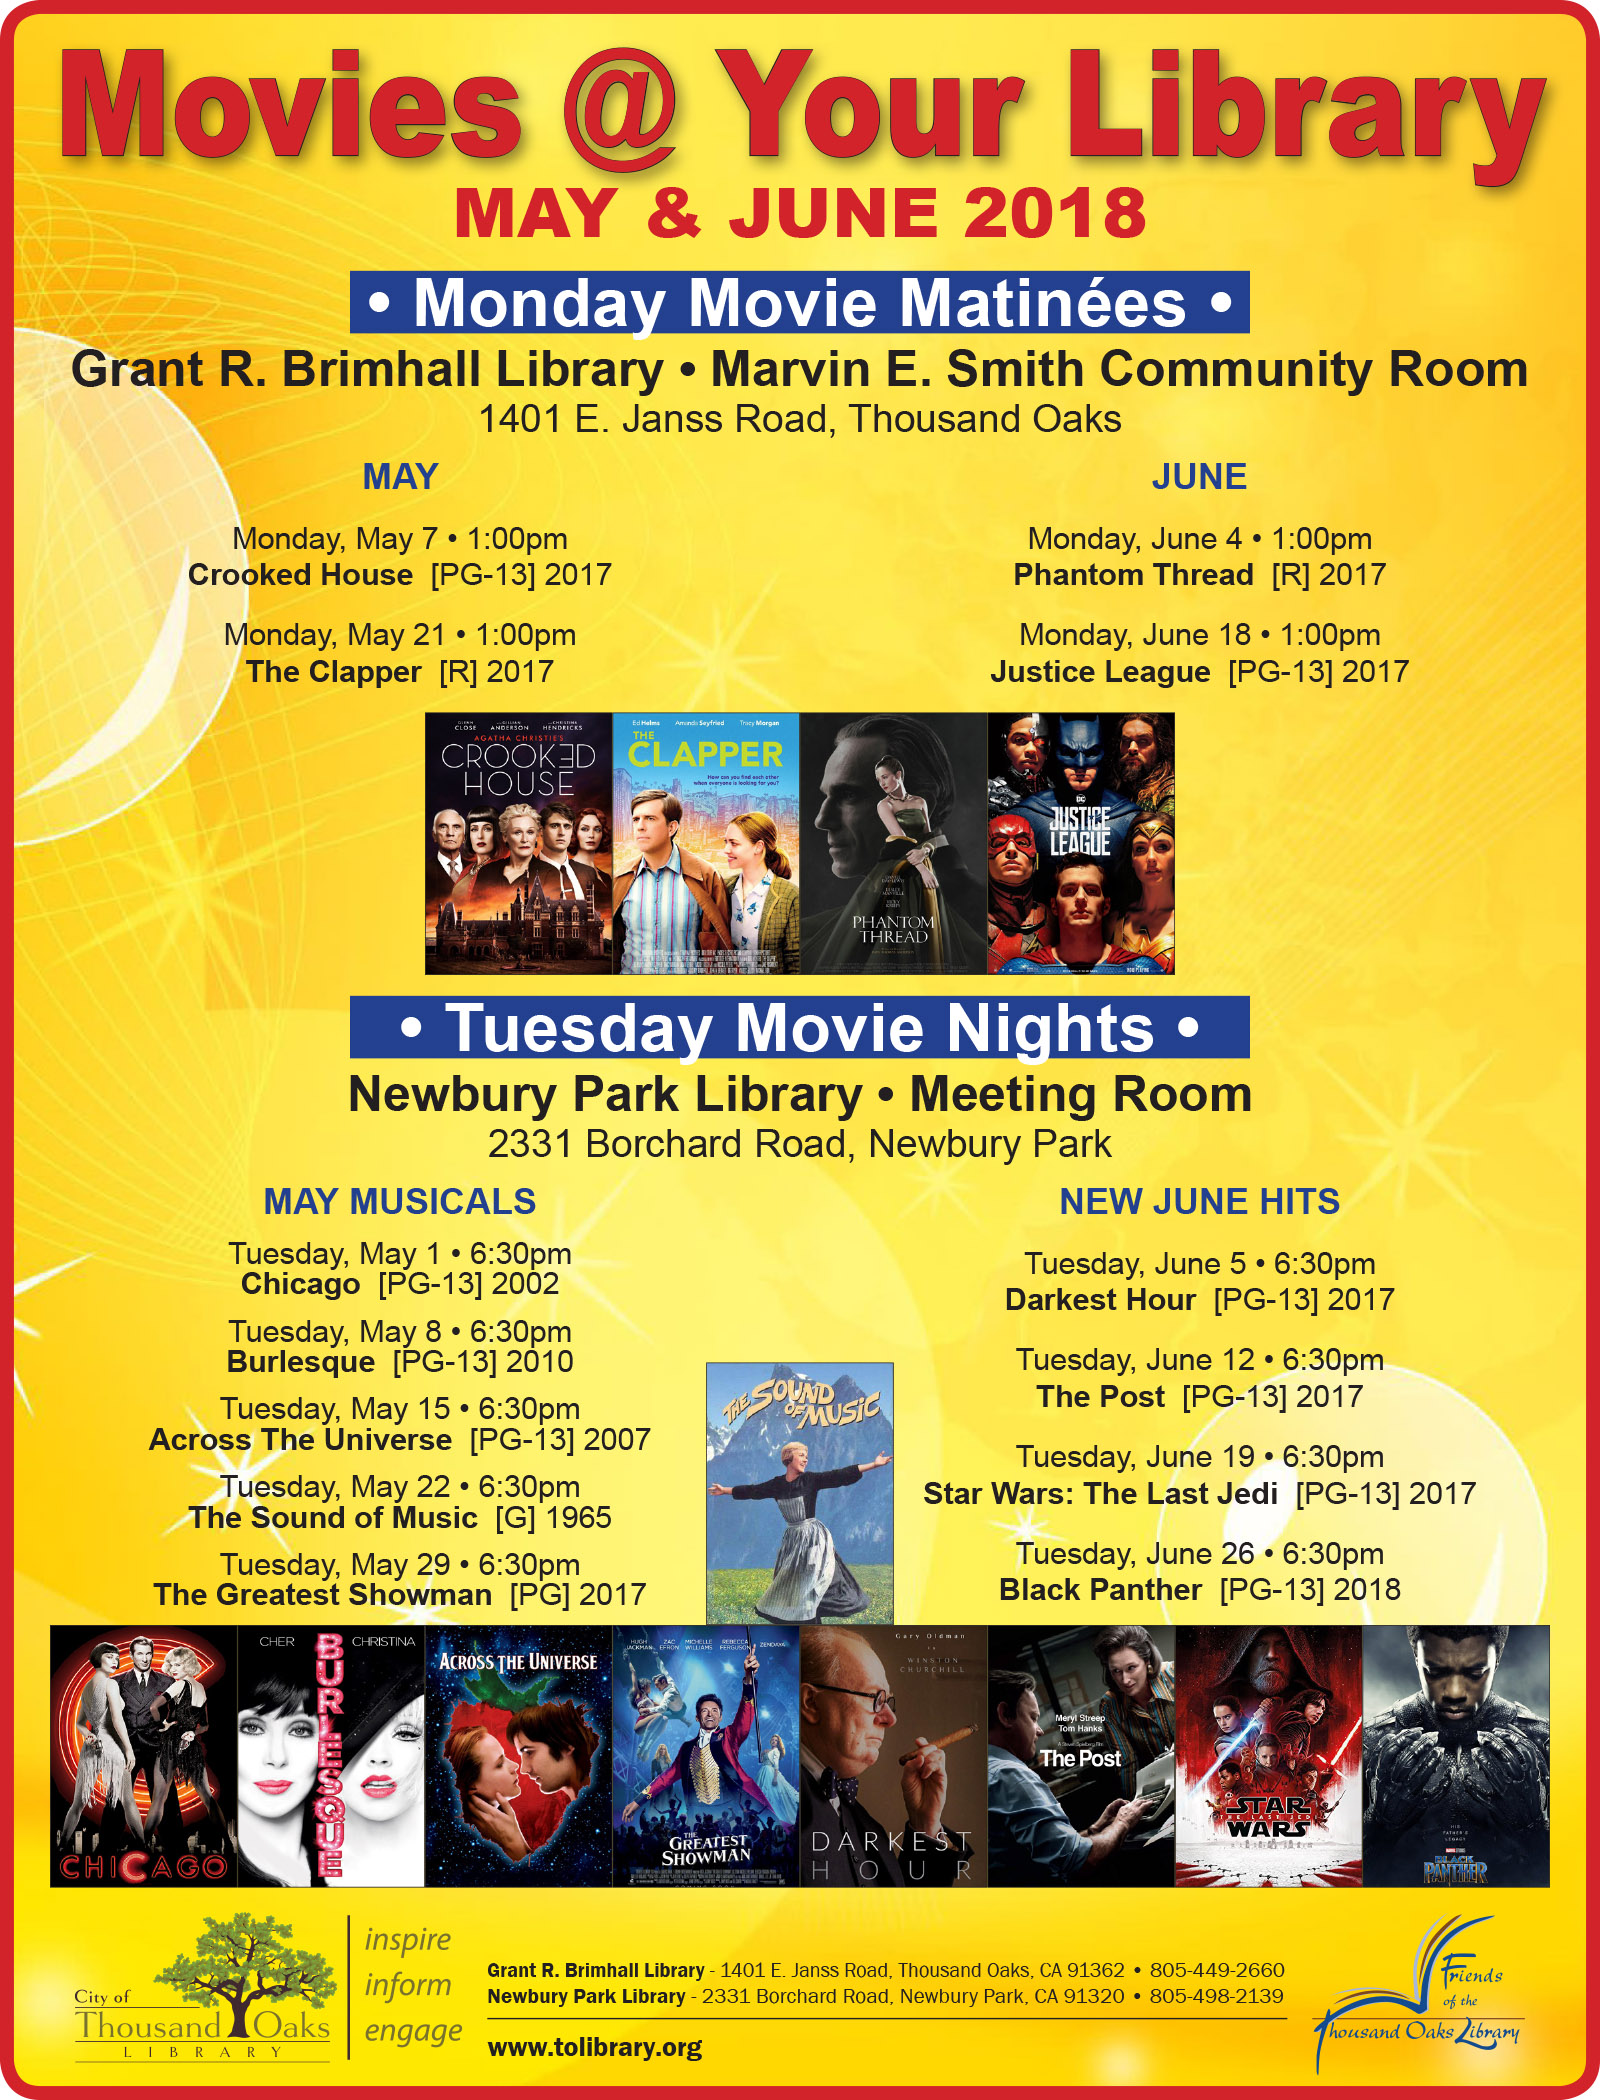 Movies @ Your Library - MayJun2018